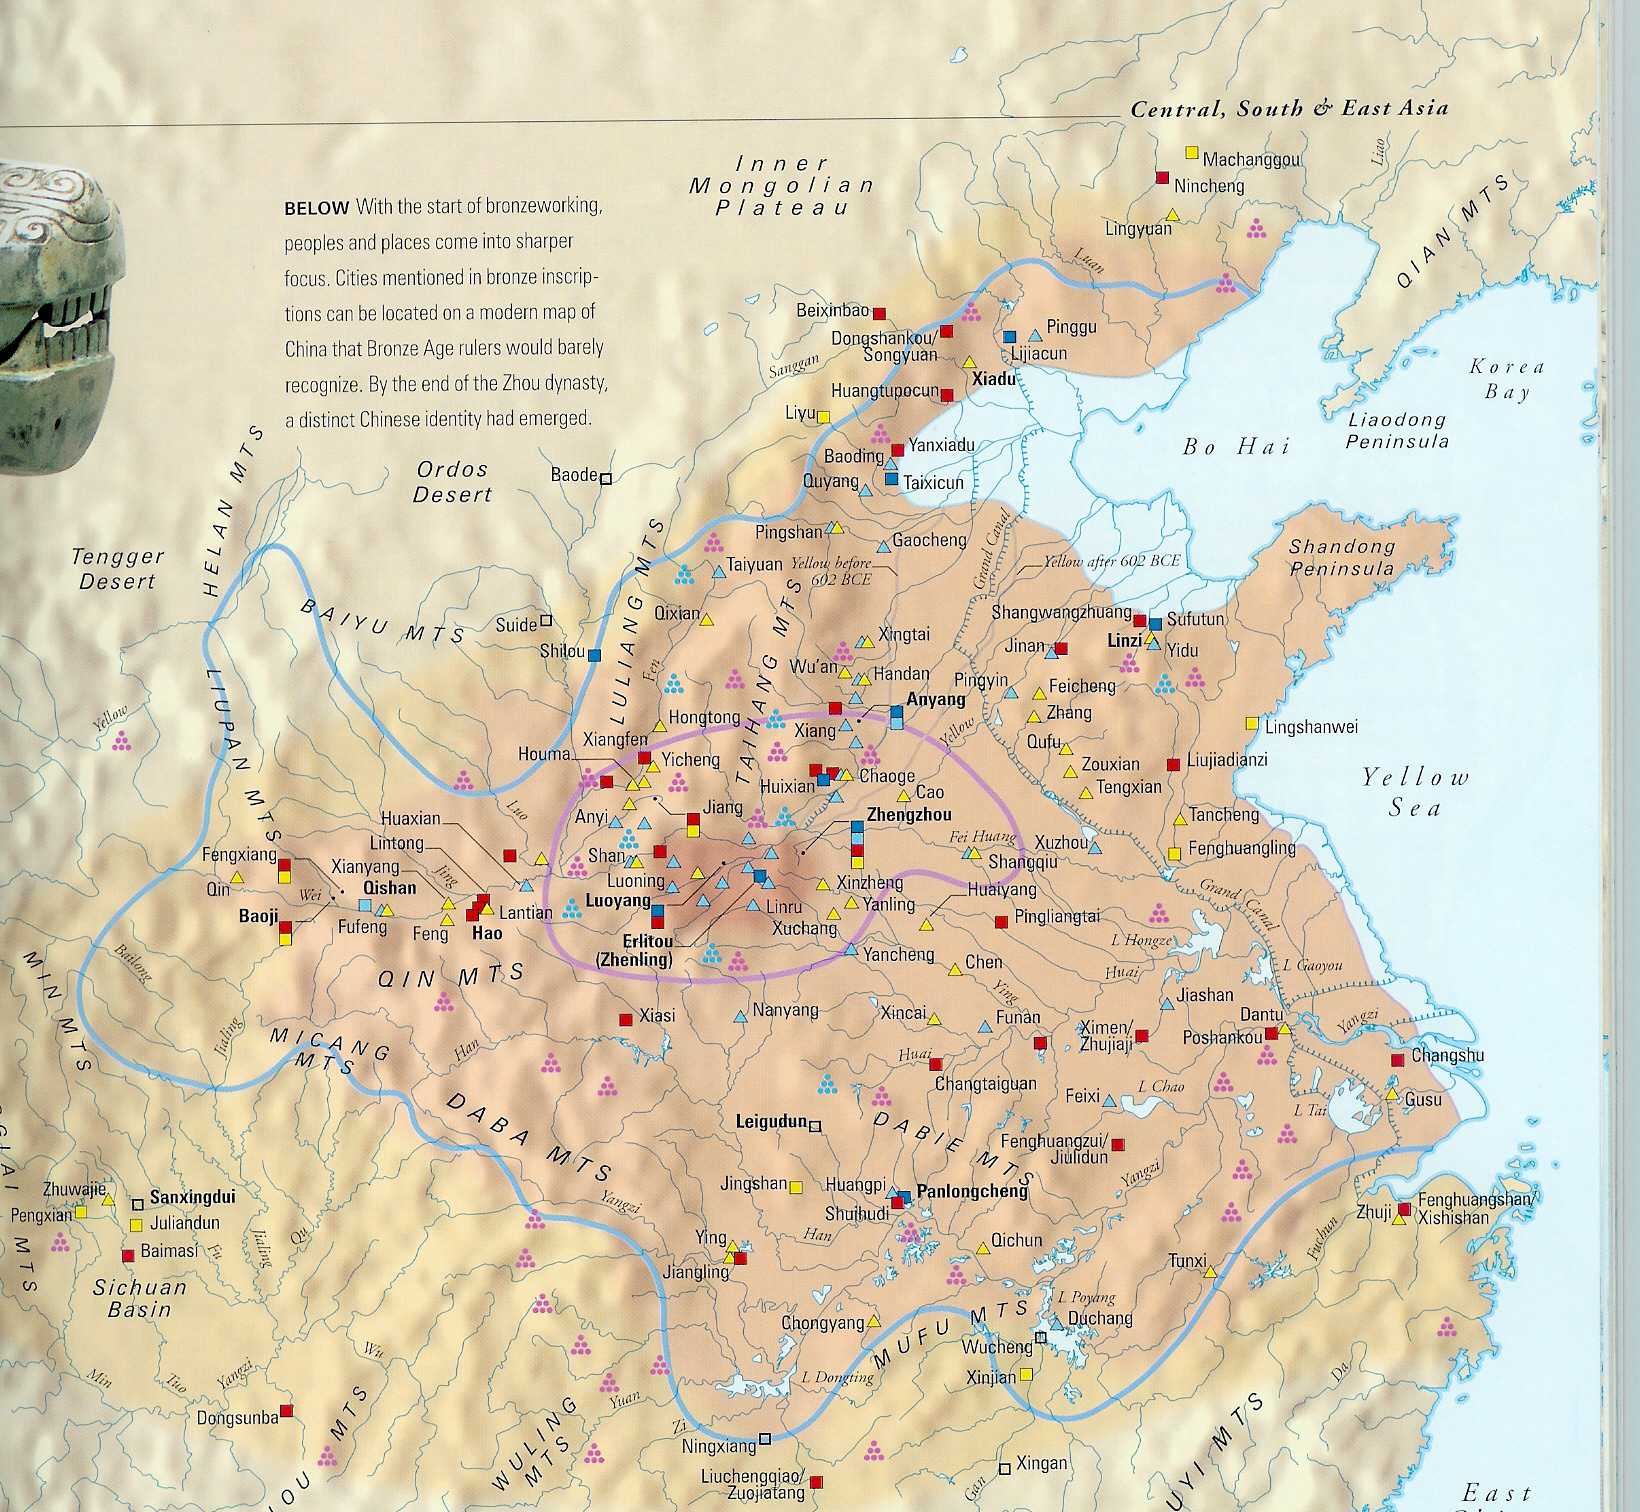 Untitled Doent on shang dynasty king zhou, shang dynasty timeline, shang dynasty cities, shang dynasty art, shang dynasty artifacts, shang dynasty calendar, shang and xia dynasty china, shang dynasty social classes, shang dynasty bronze, shang dynasty capitals map,